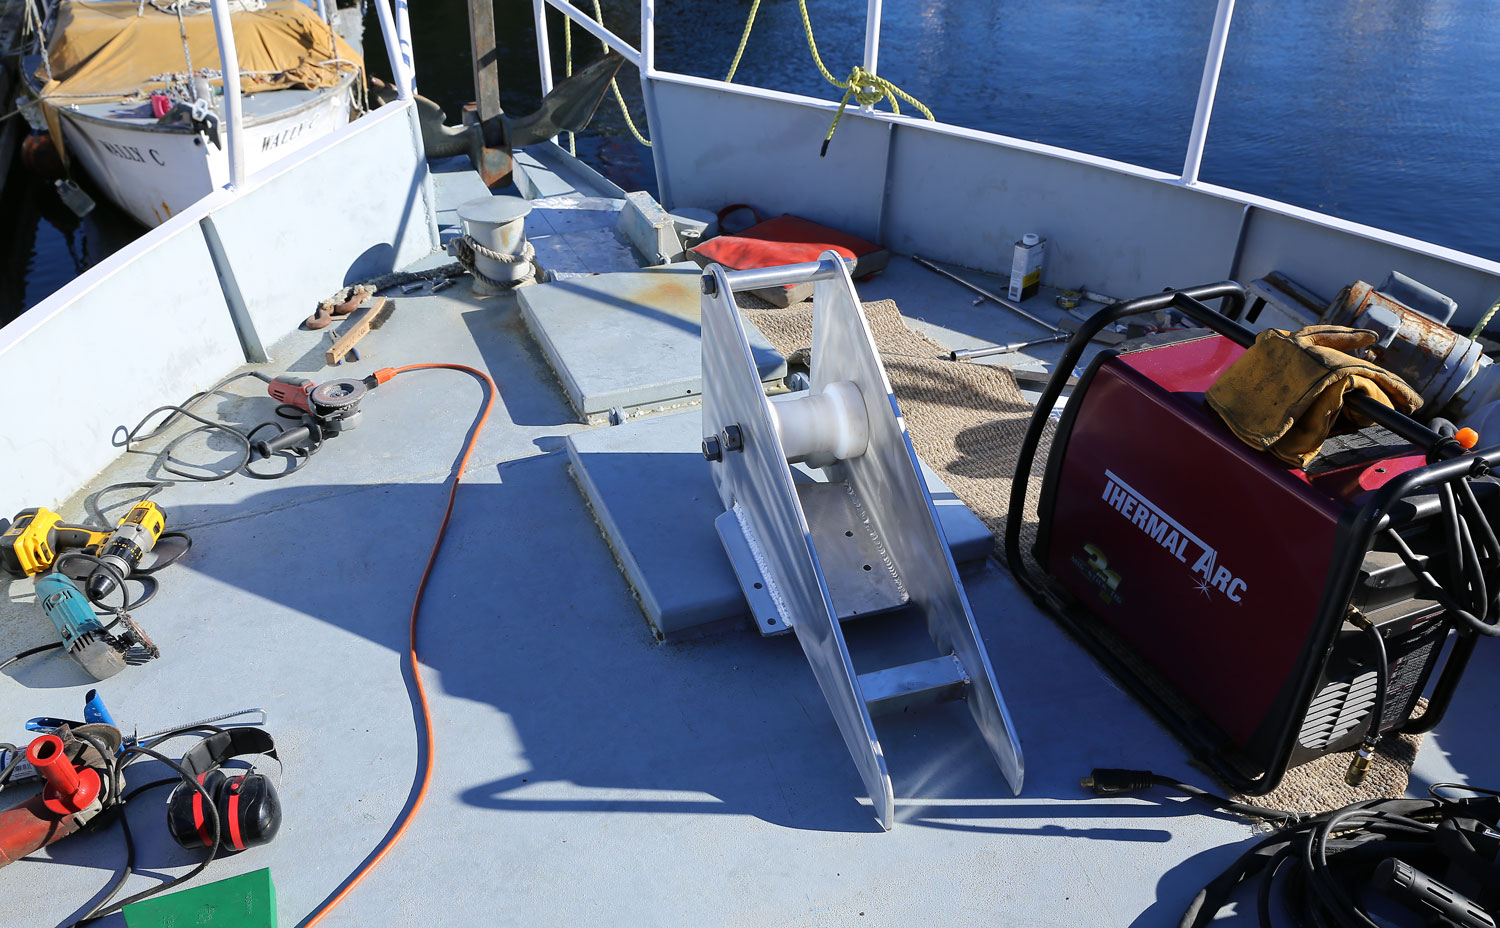 The foredeck in project mode. The new bow roller is leaning on the hatch and the anchor is tied up in the bowsprit.